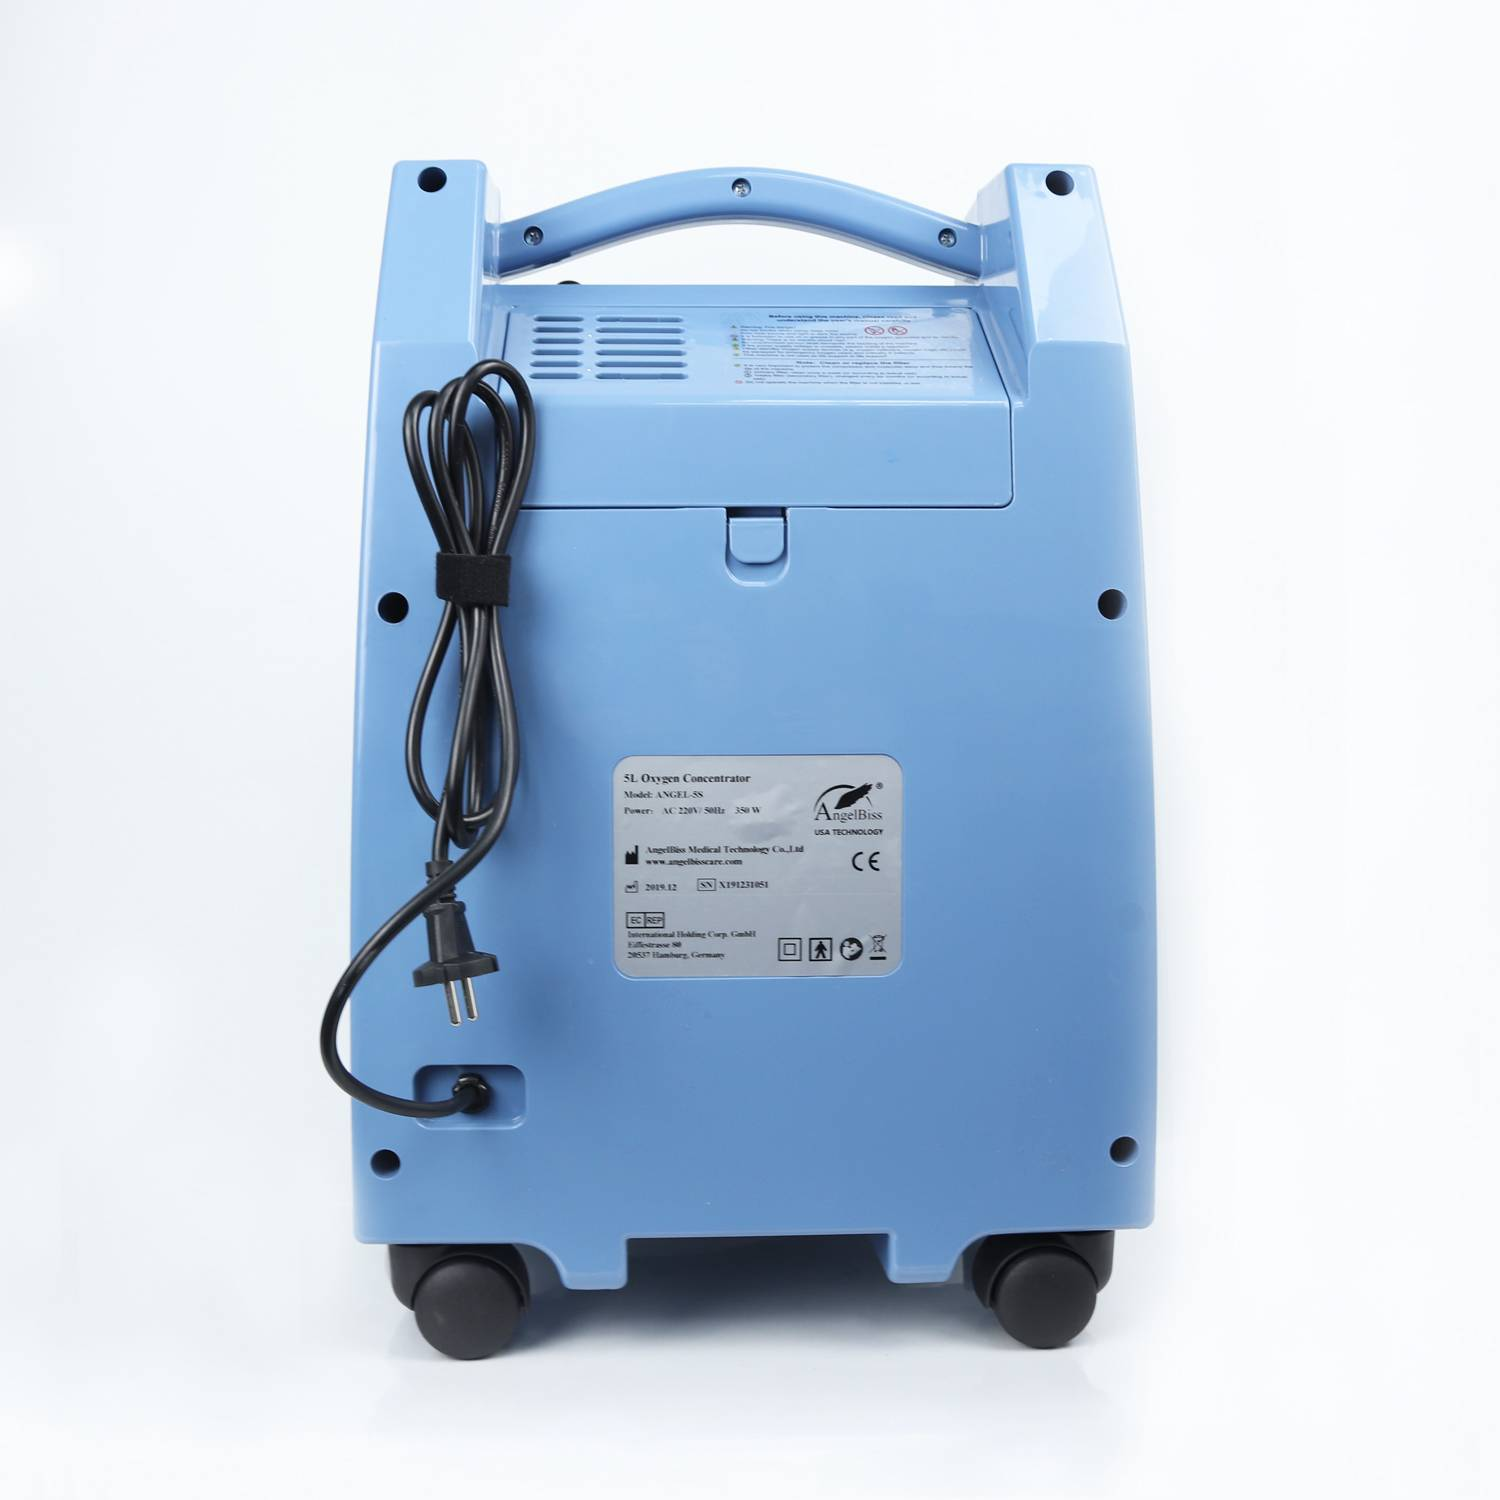 China Wholesale PSA Oxygen Concentrator Suppliers - Rechargeable Oxygen Concentrator (AC, DC, Batteries) ANGEL-5SB – AngelBiss detail pictures